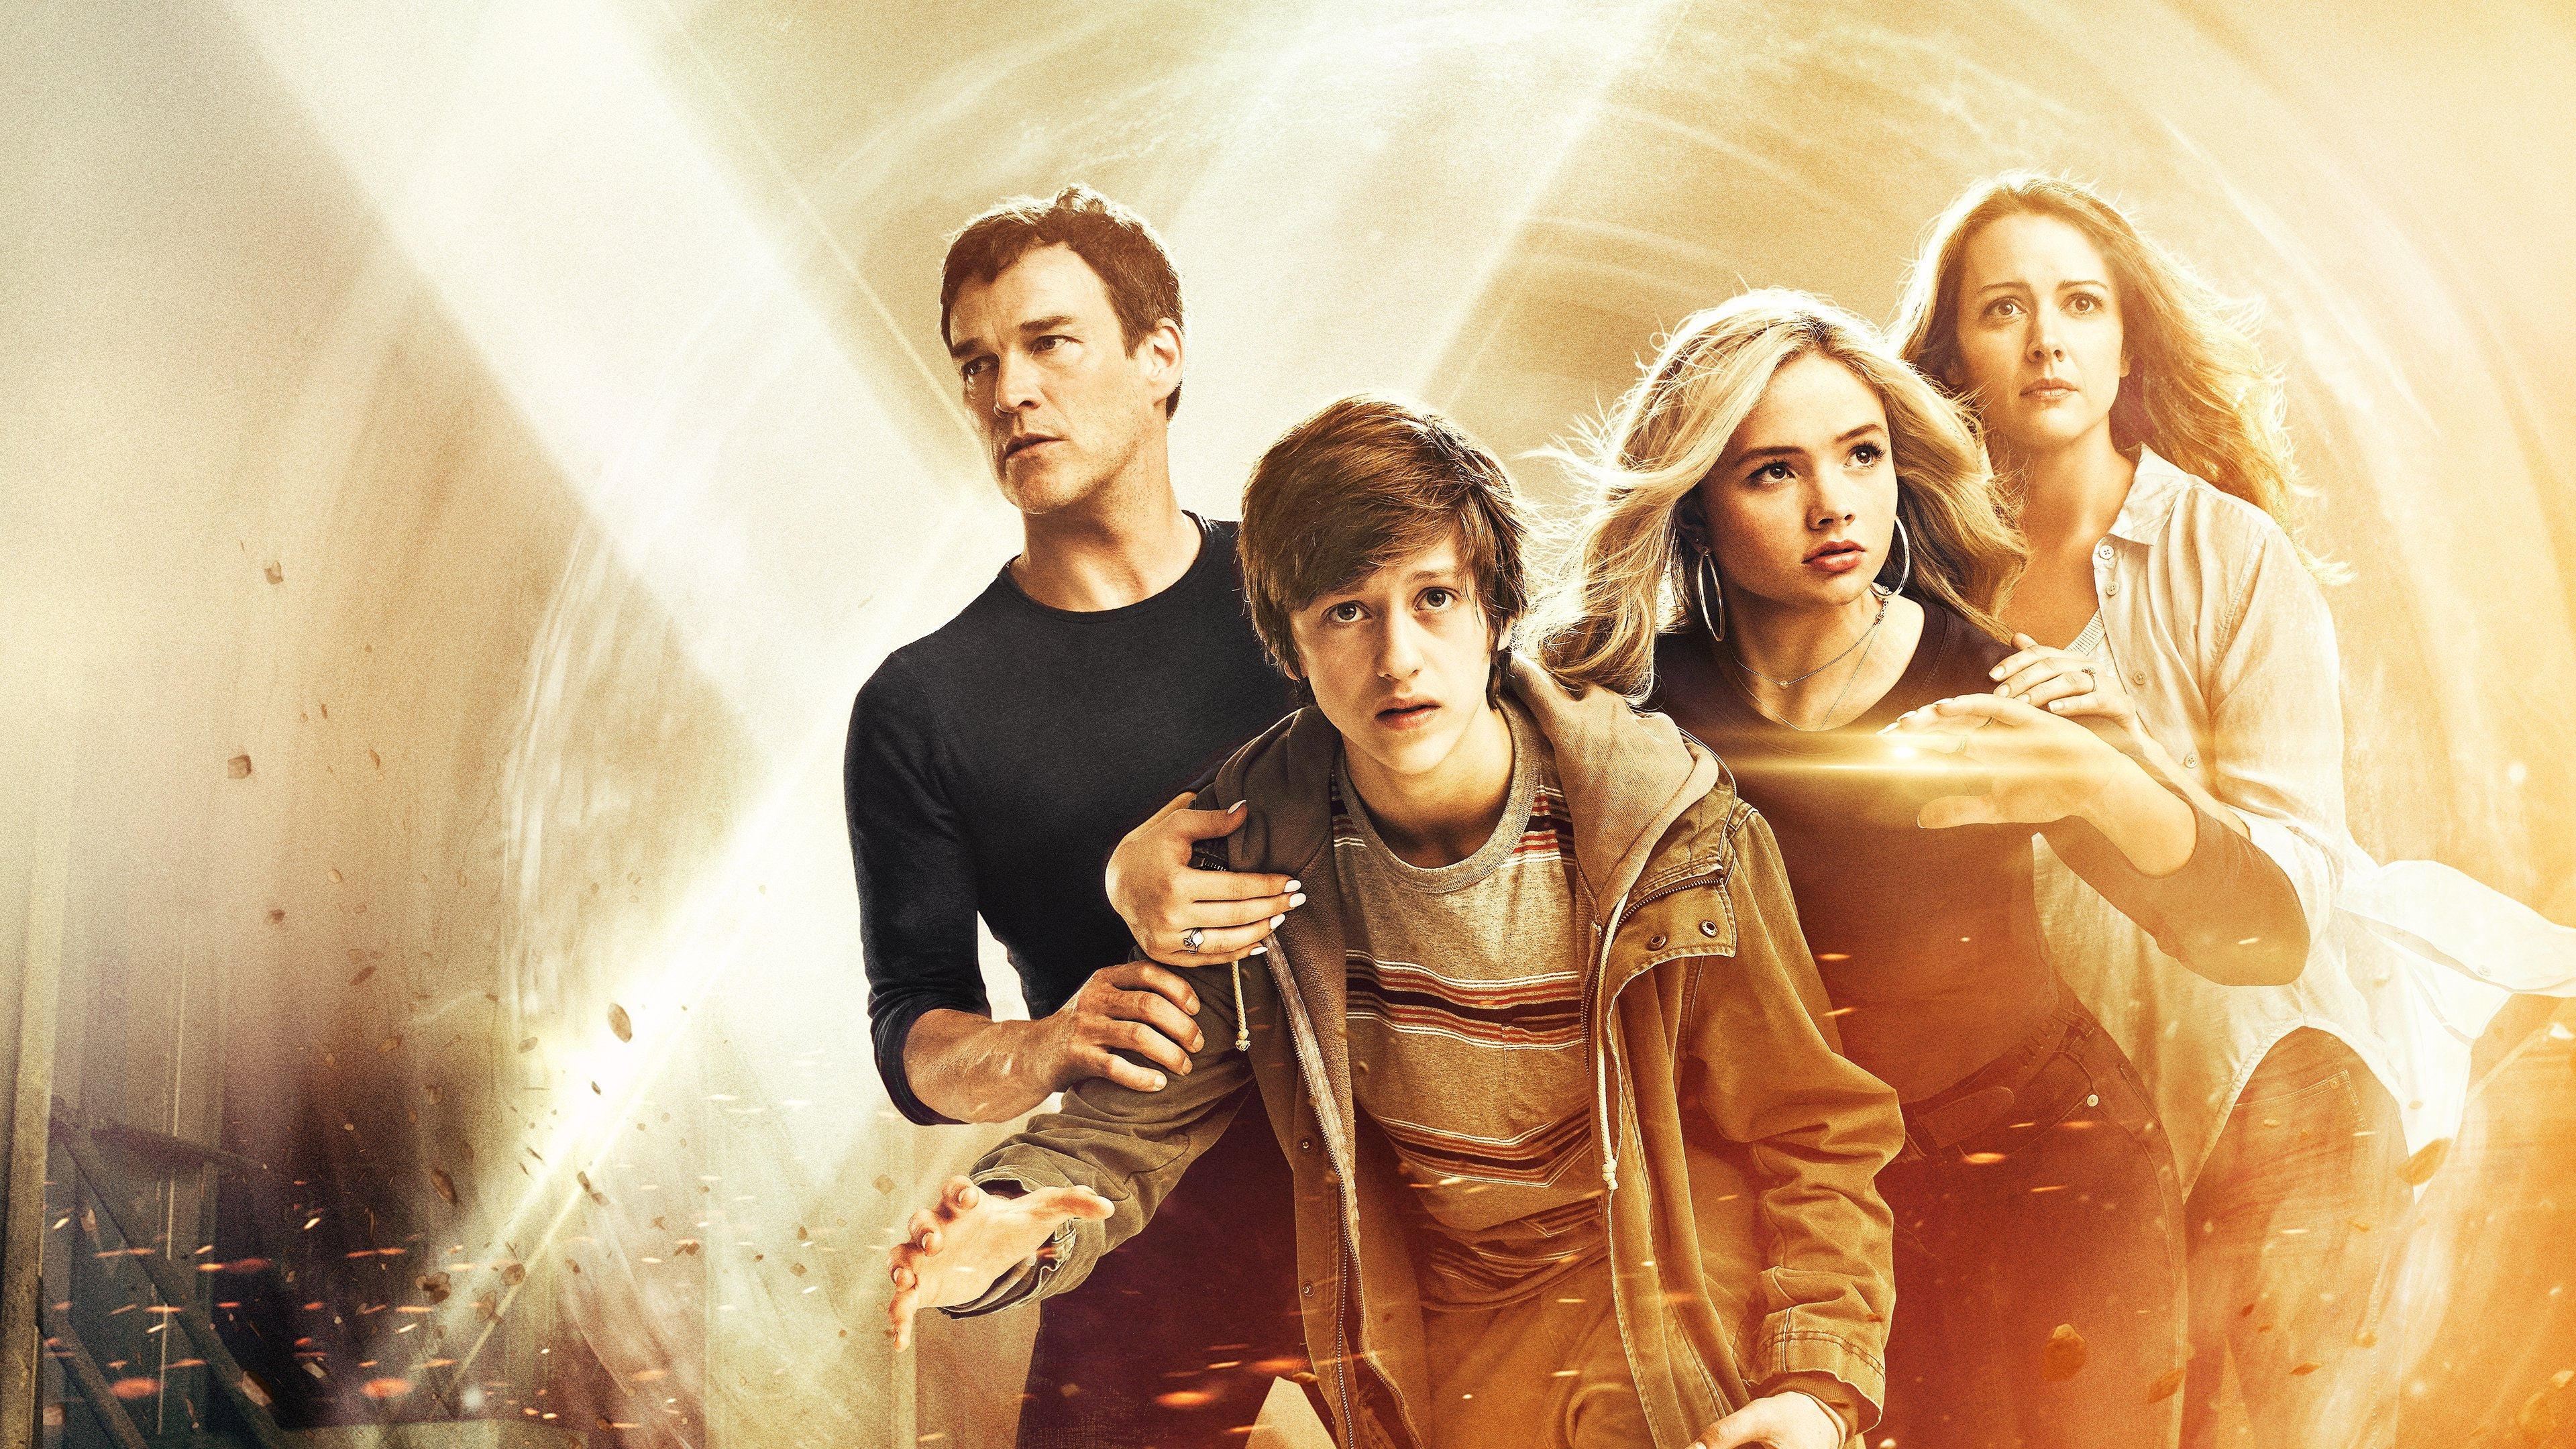 The Gifted Soundtrack